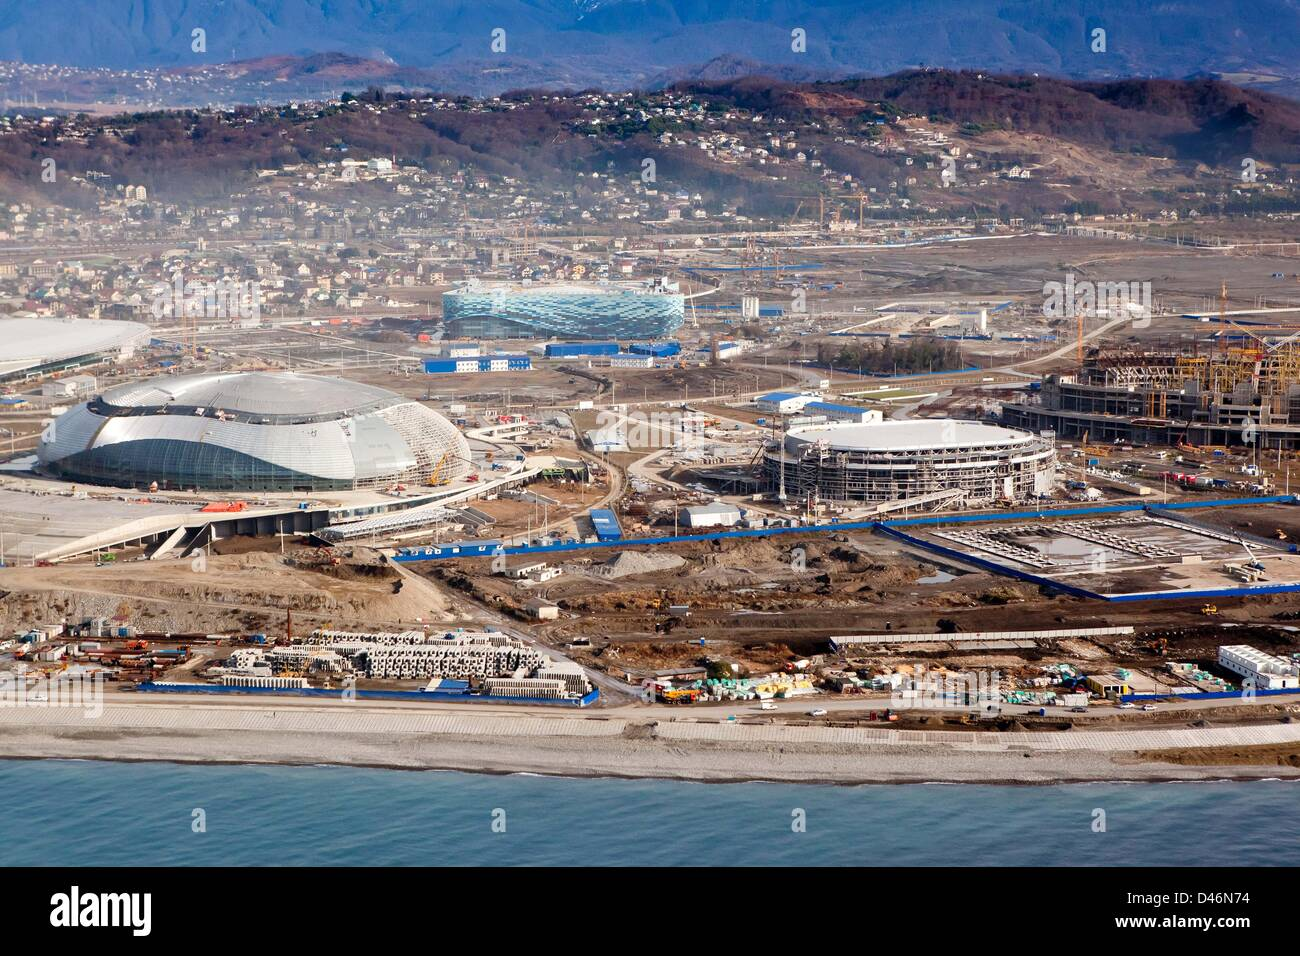 Aerial view of the Olympic Park, DECEMBER 14, 2011 - Olympic Preview : (L-R) The Bolshoy ice dome, the ice hockey - Stock Image